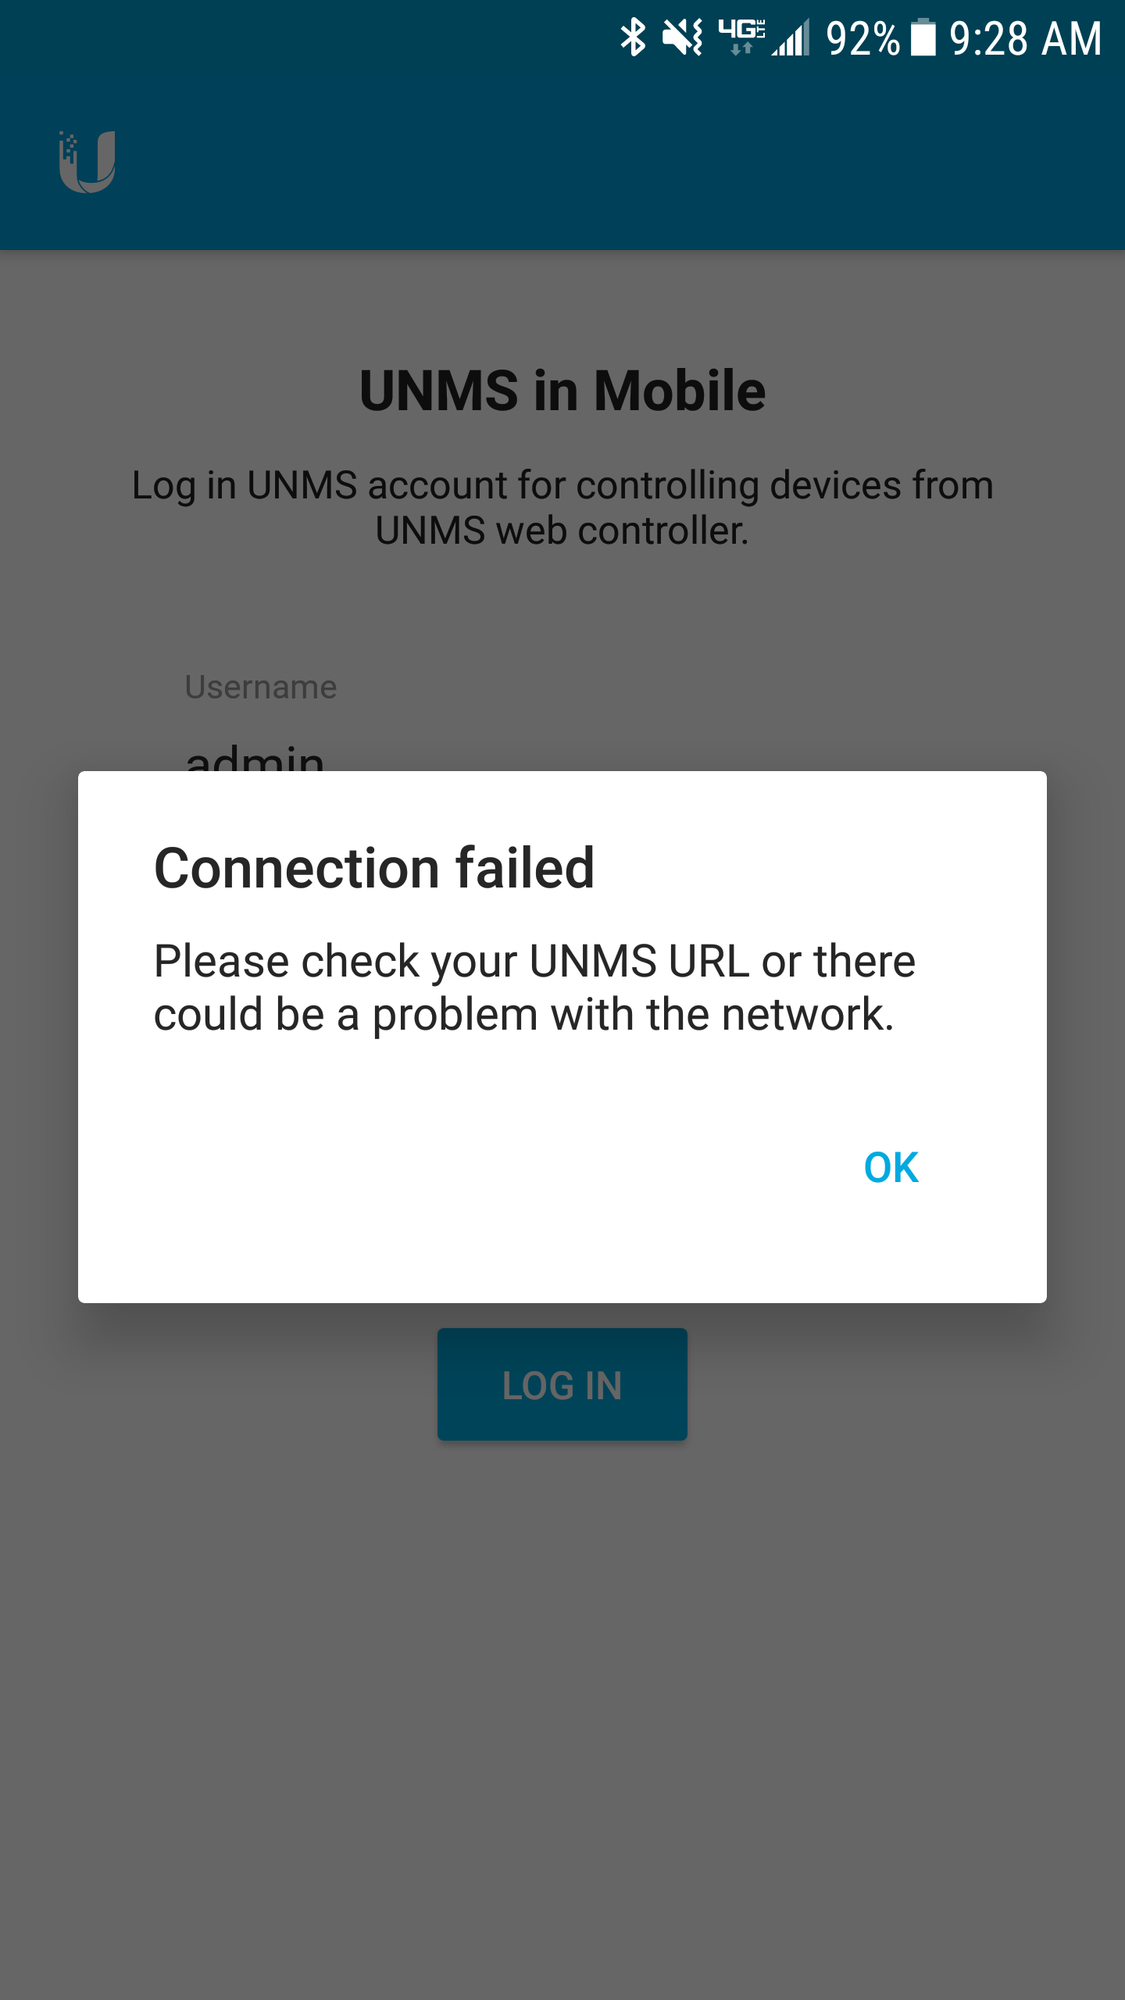 Unable to connect to unms from UMobile | Ubiquiti Community